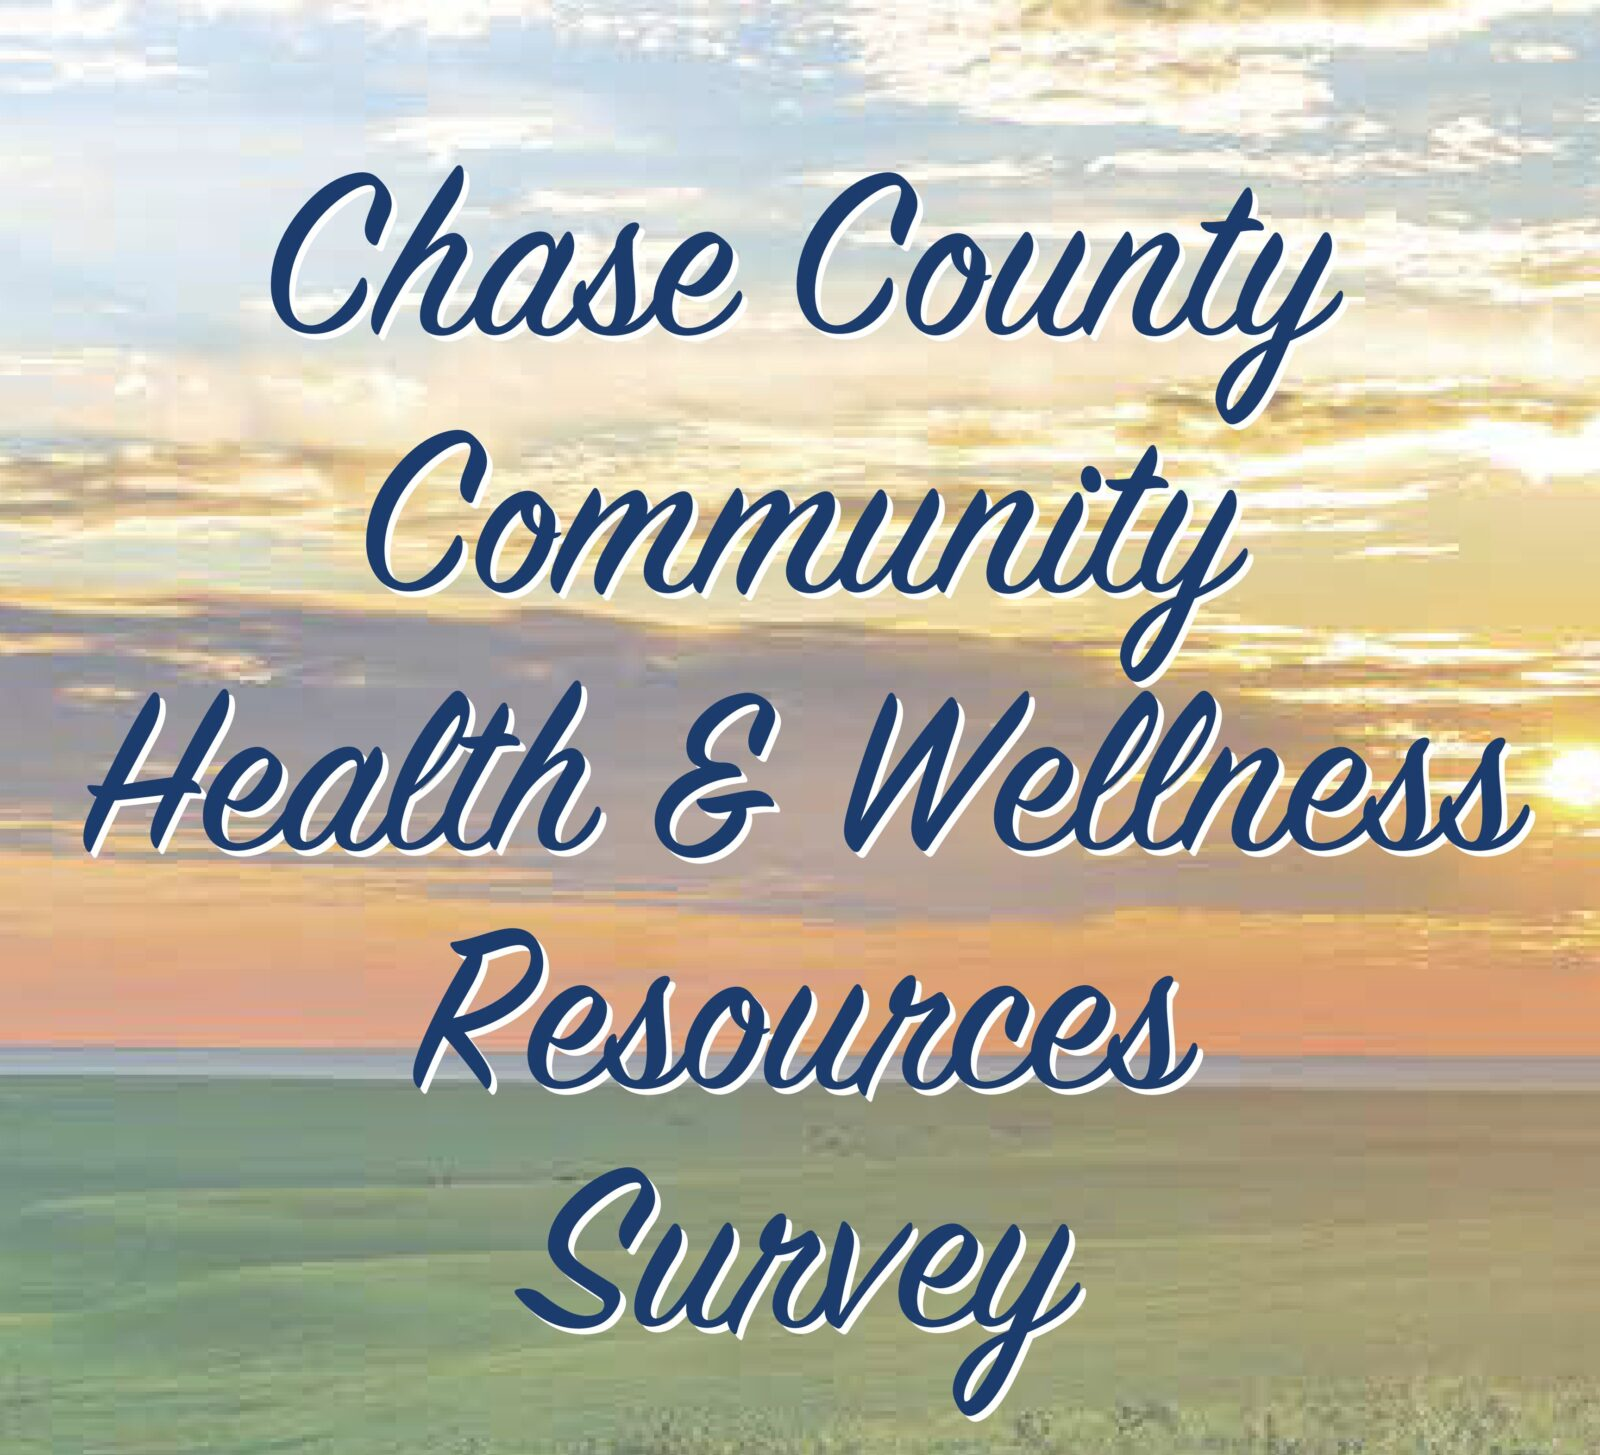 Community Health & Wellness Resources Survey